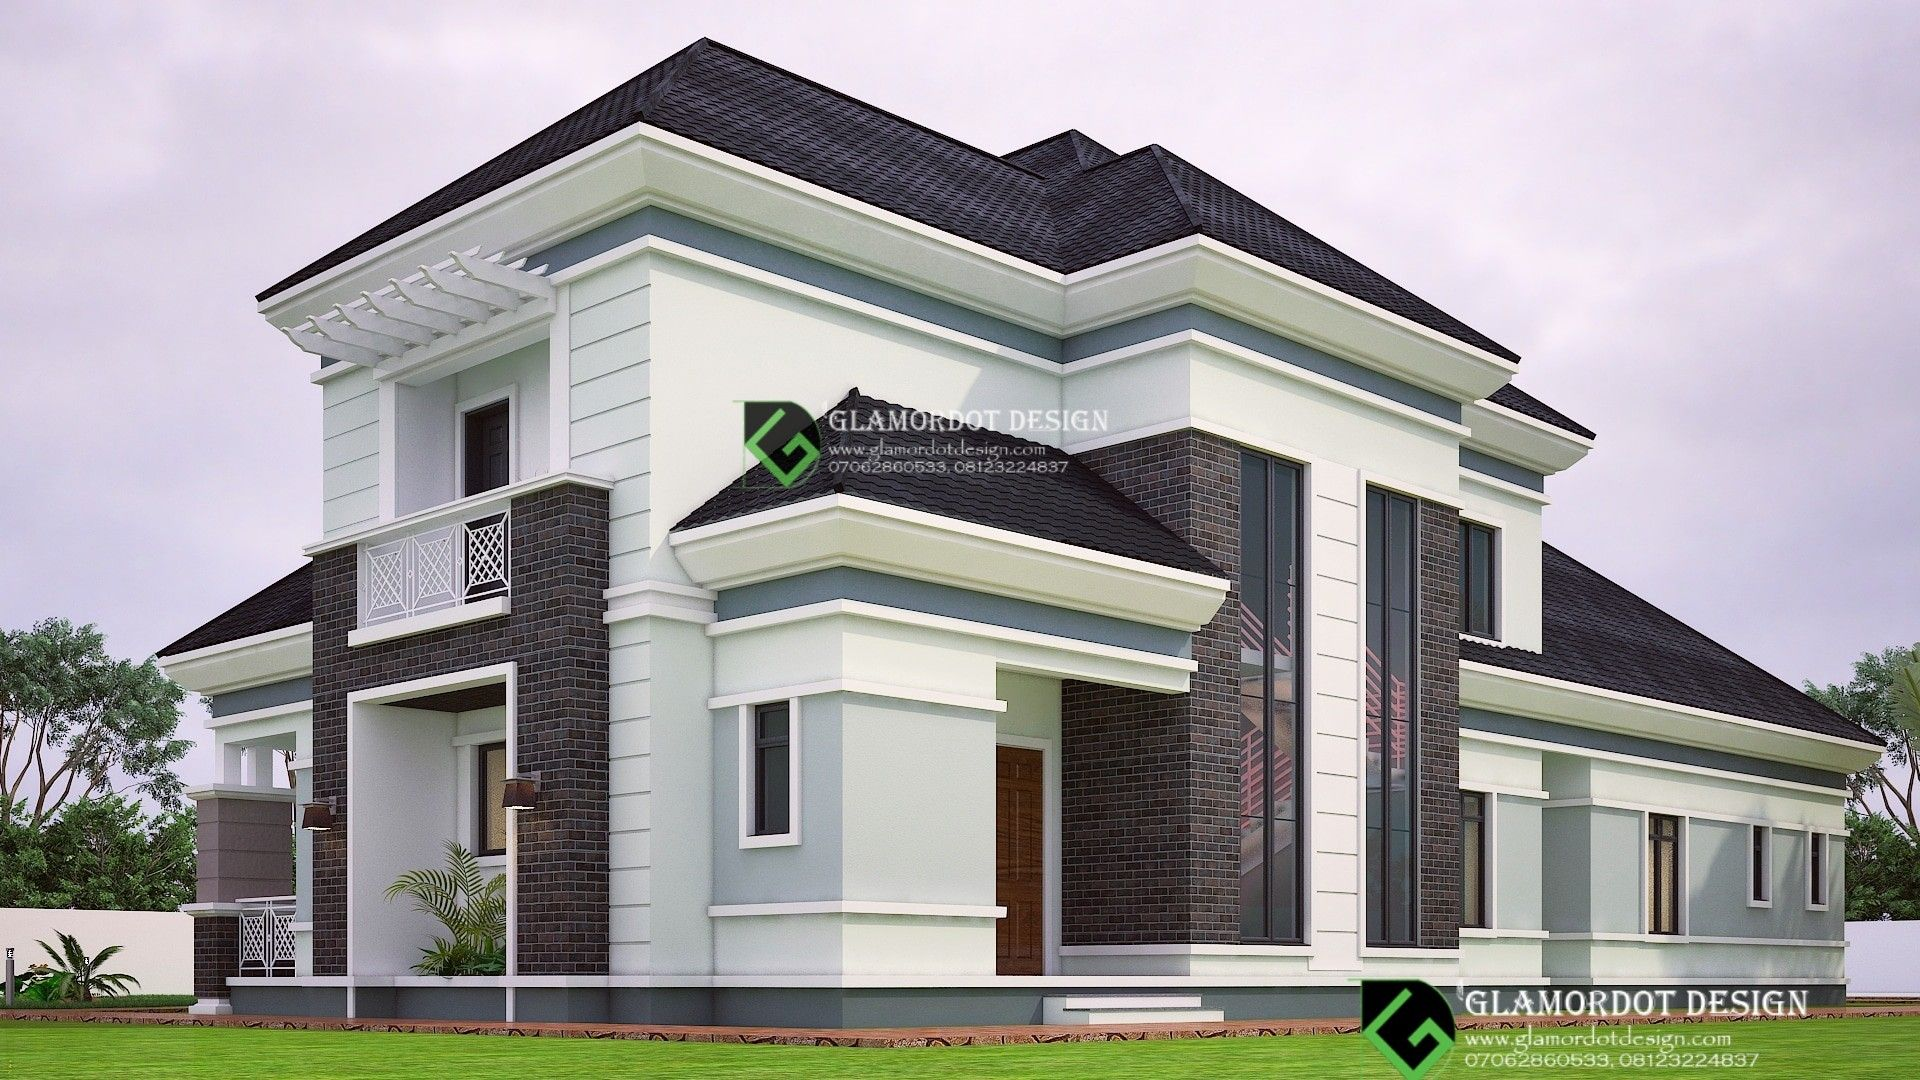 Pin By Glamordot Design On Bungalow With Penthouse Designs Building House Plans Designs Beautiful House Plans Apartment Architecture